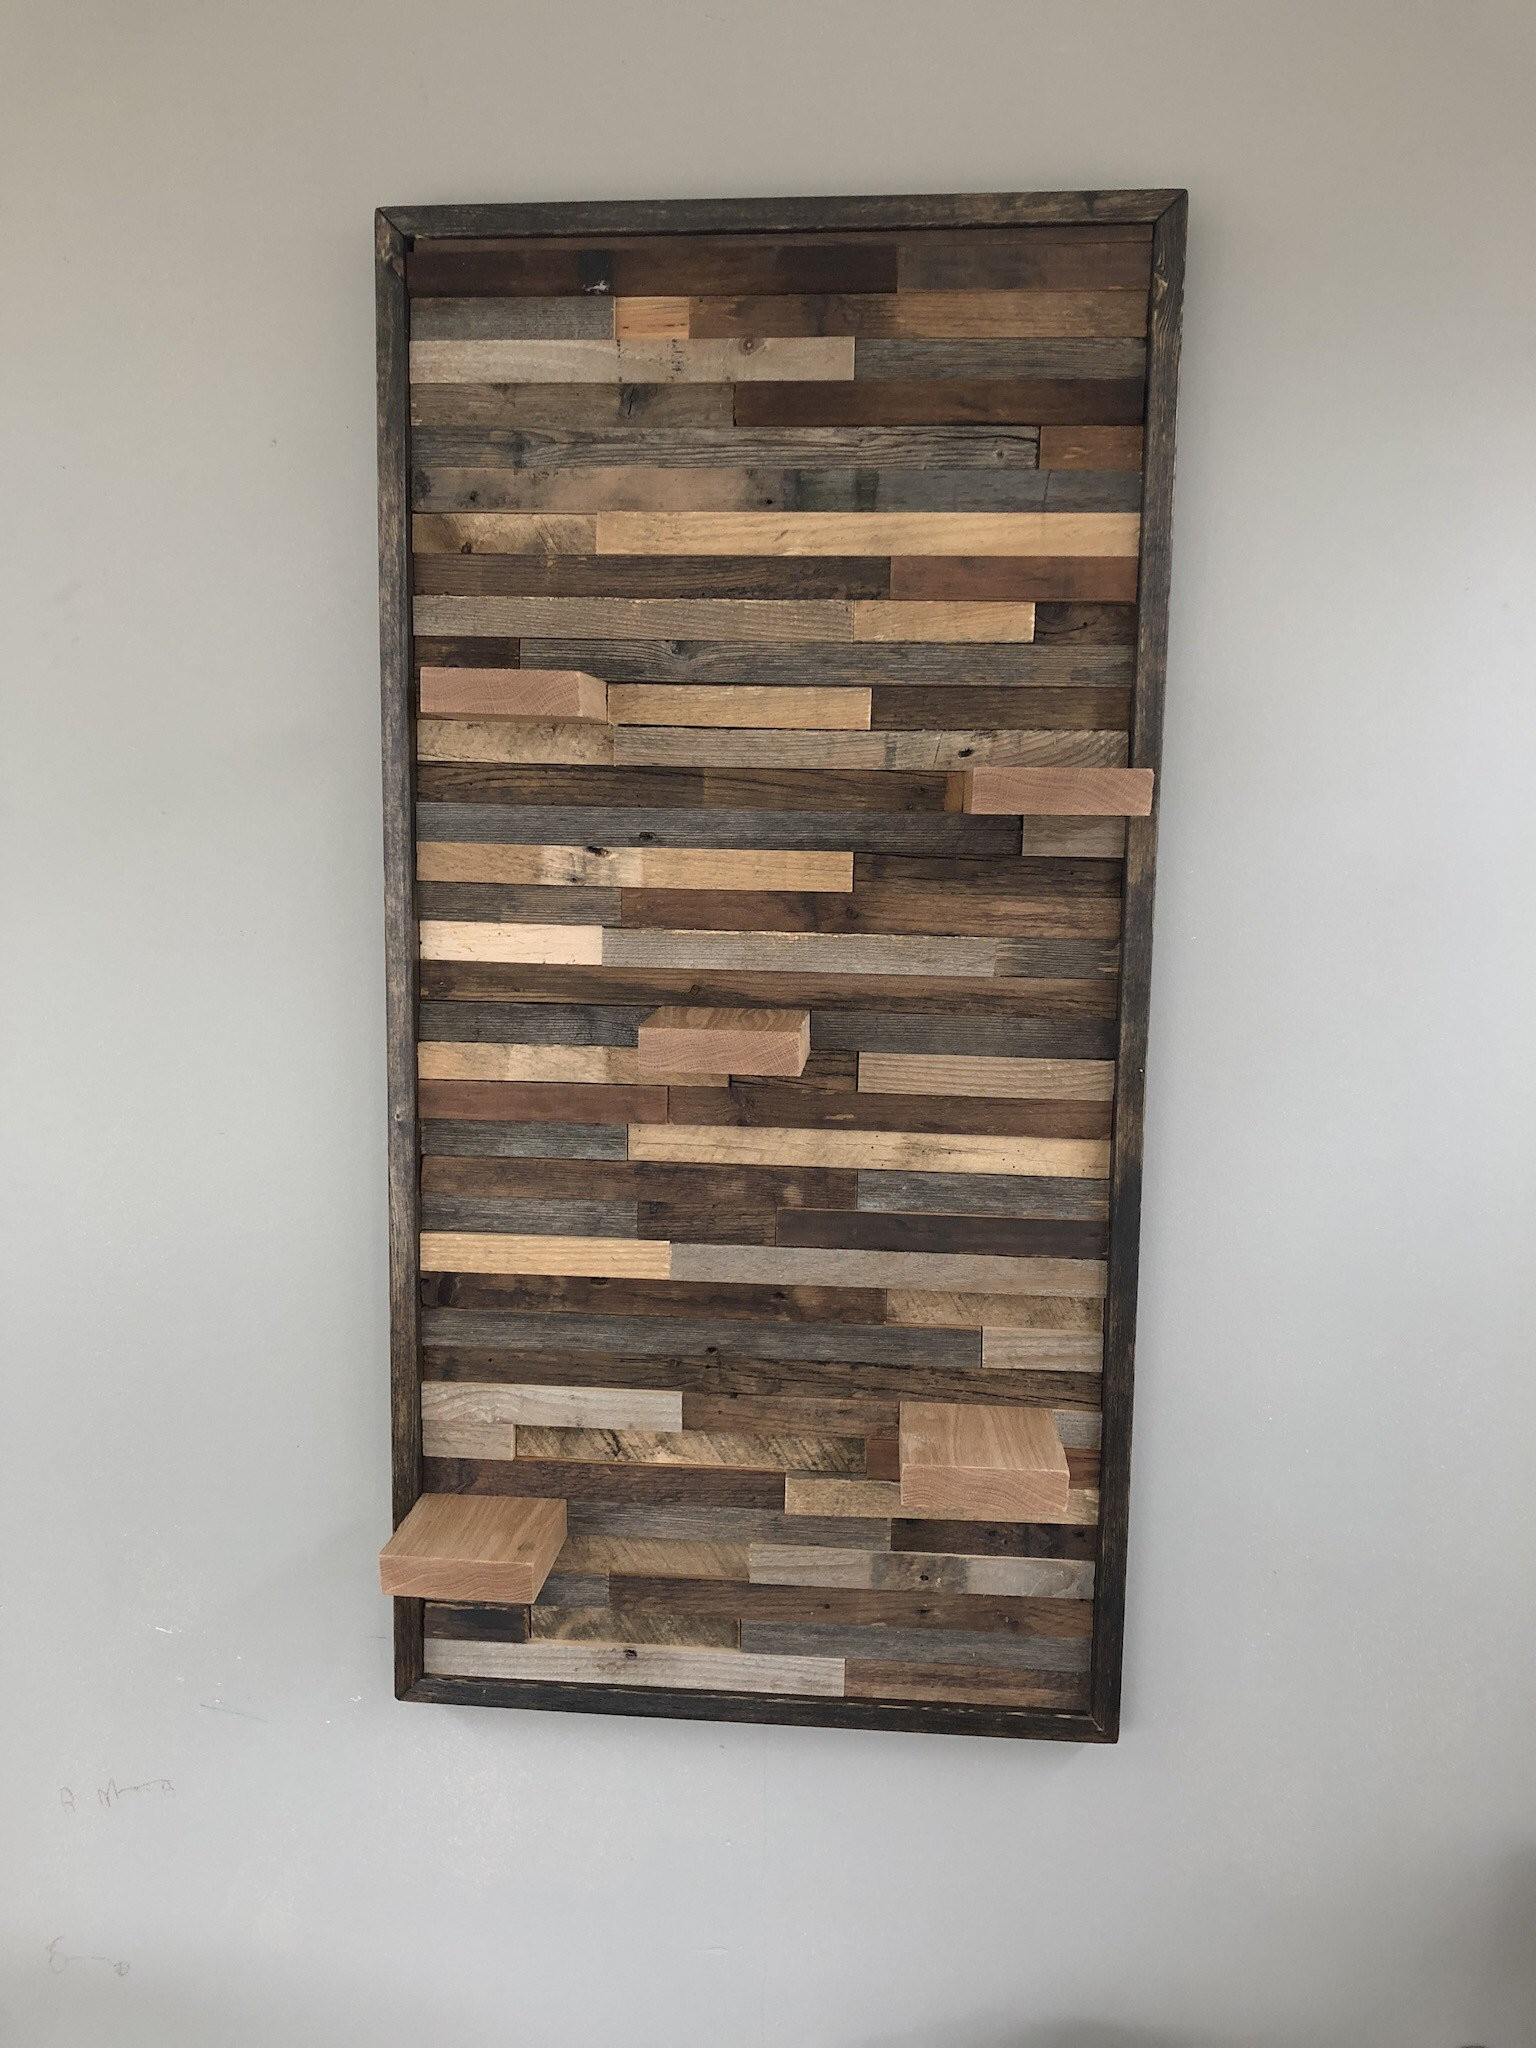 Handmade Wall Decor Rustic Wall Art with Shelves Handmade Reclaimed Barn